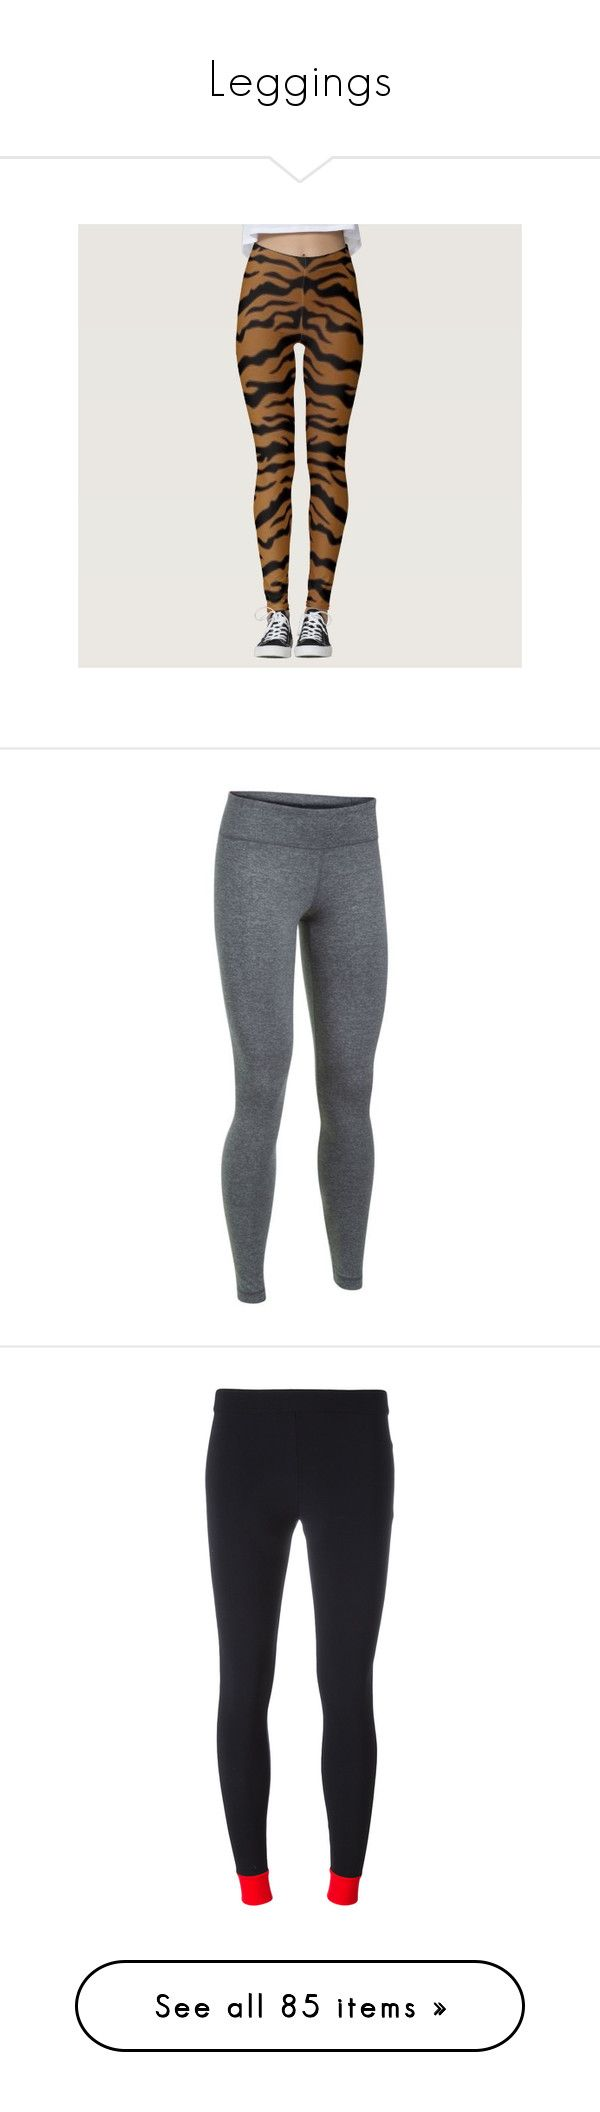 Leggings by georginalan on Polyvore featuring polyvore, women's fashion, clothing, pants, leggings, animals, wildcat, two tone pants, tiger stripe leggings, patterned pants, tiger print pants, animal print leggings, activewear, activewear pants, bottoms, grey, under armour, under armour sportswear, black, lycra leggings, spandex leggings, neon leggings, lycra pants, spandex pants, pants and shorts, tights, faux leather pants, metallic trousers, faux leather leggings, vegan leather pants…